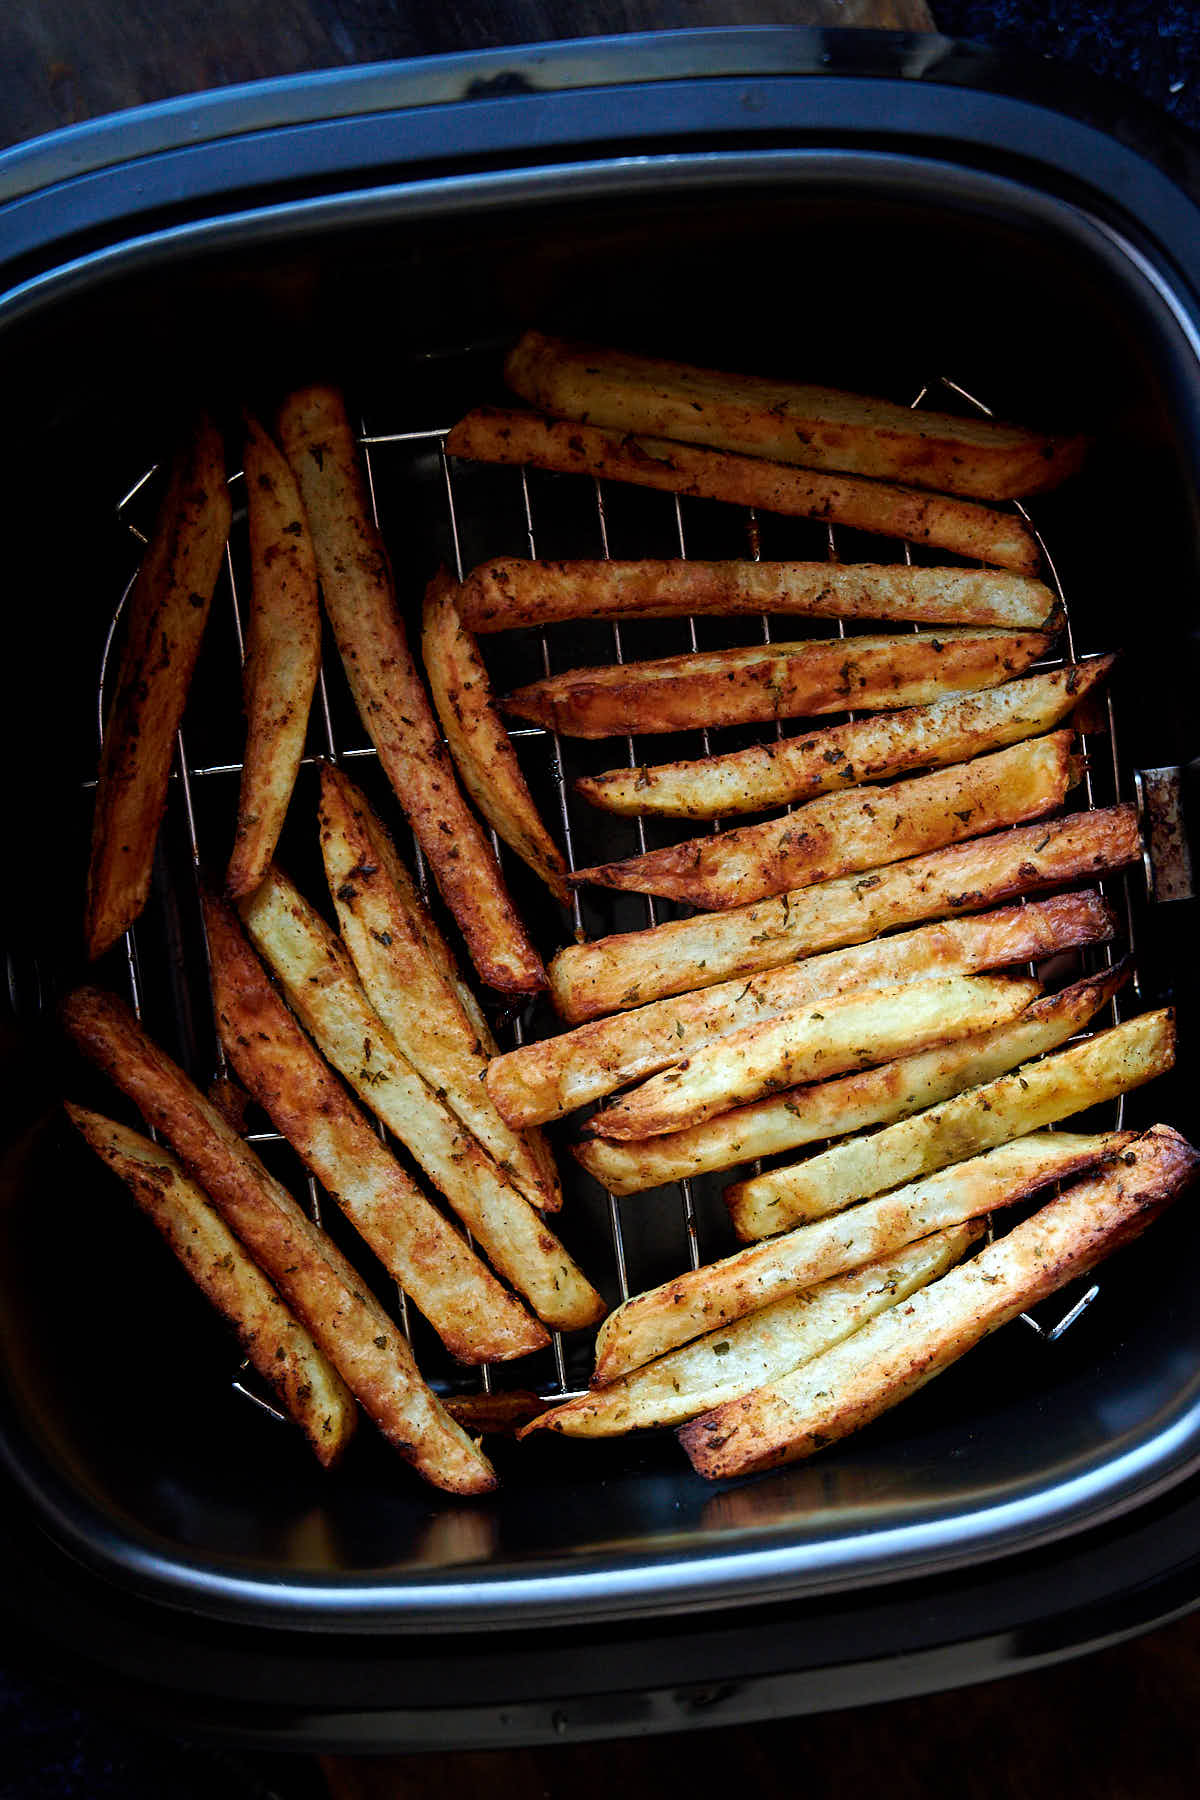 These air fryer French fries are extra crispy and crunchy on the outside and creamy on the inside. They are like deep-fried fries, only without a mess and added calories. They taste amazingly good! I guarantee you, these are some of the best French fries you can make at home. These French fries are a must try! | ifoodblogger.com